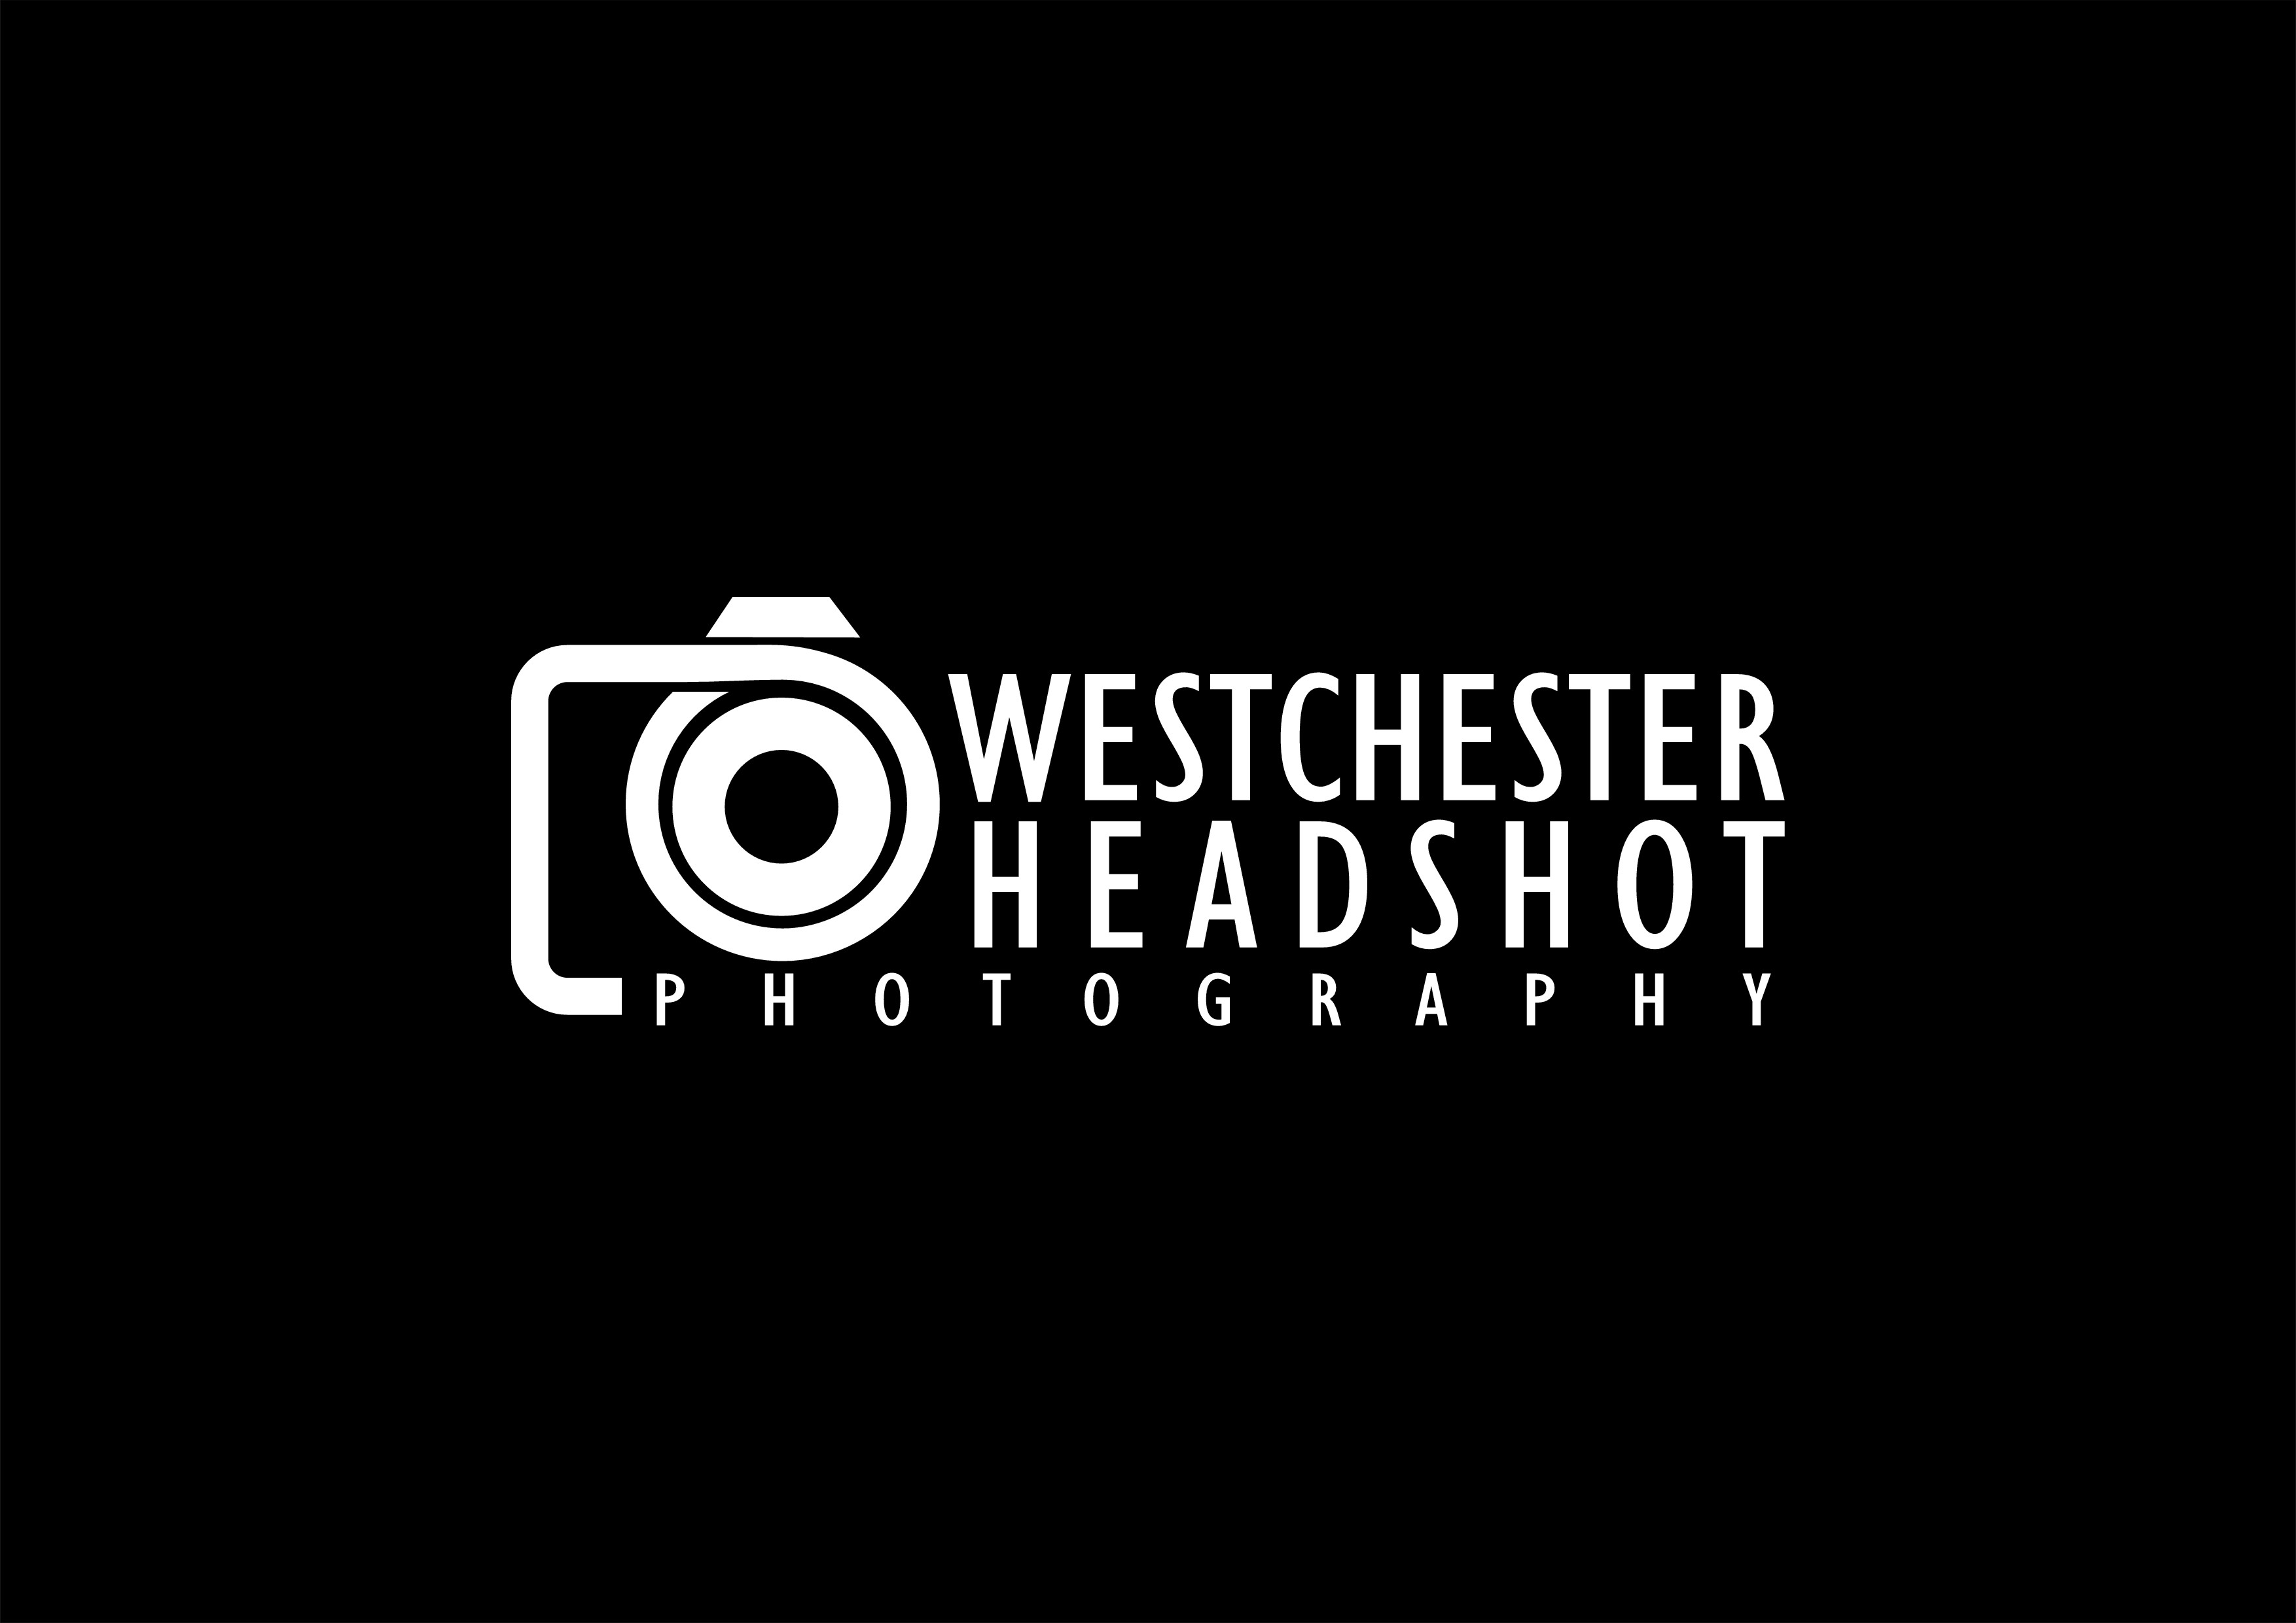 Create a logo for Westchester Headshot Photography